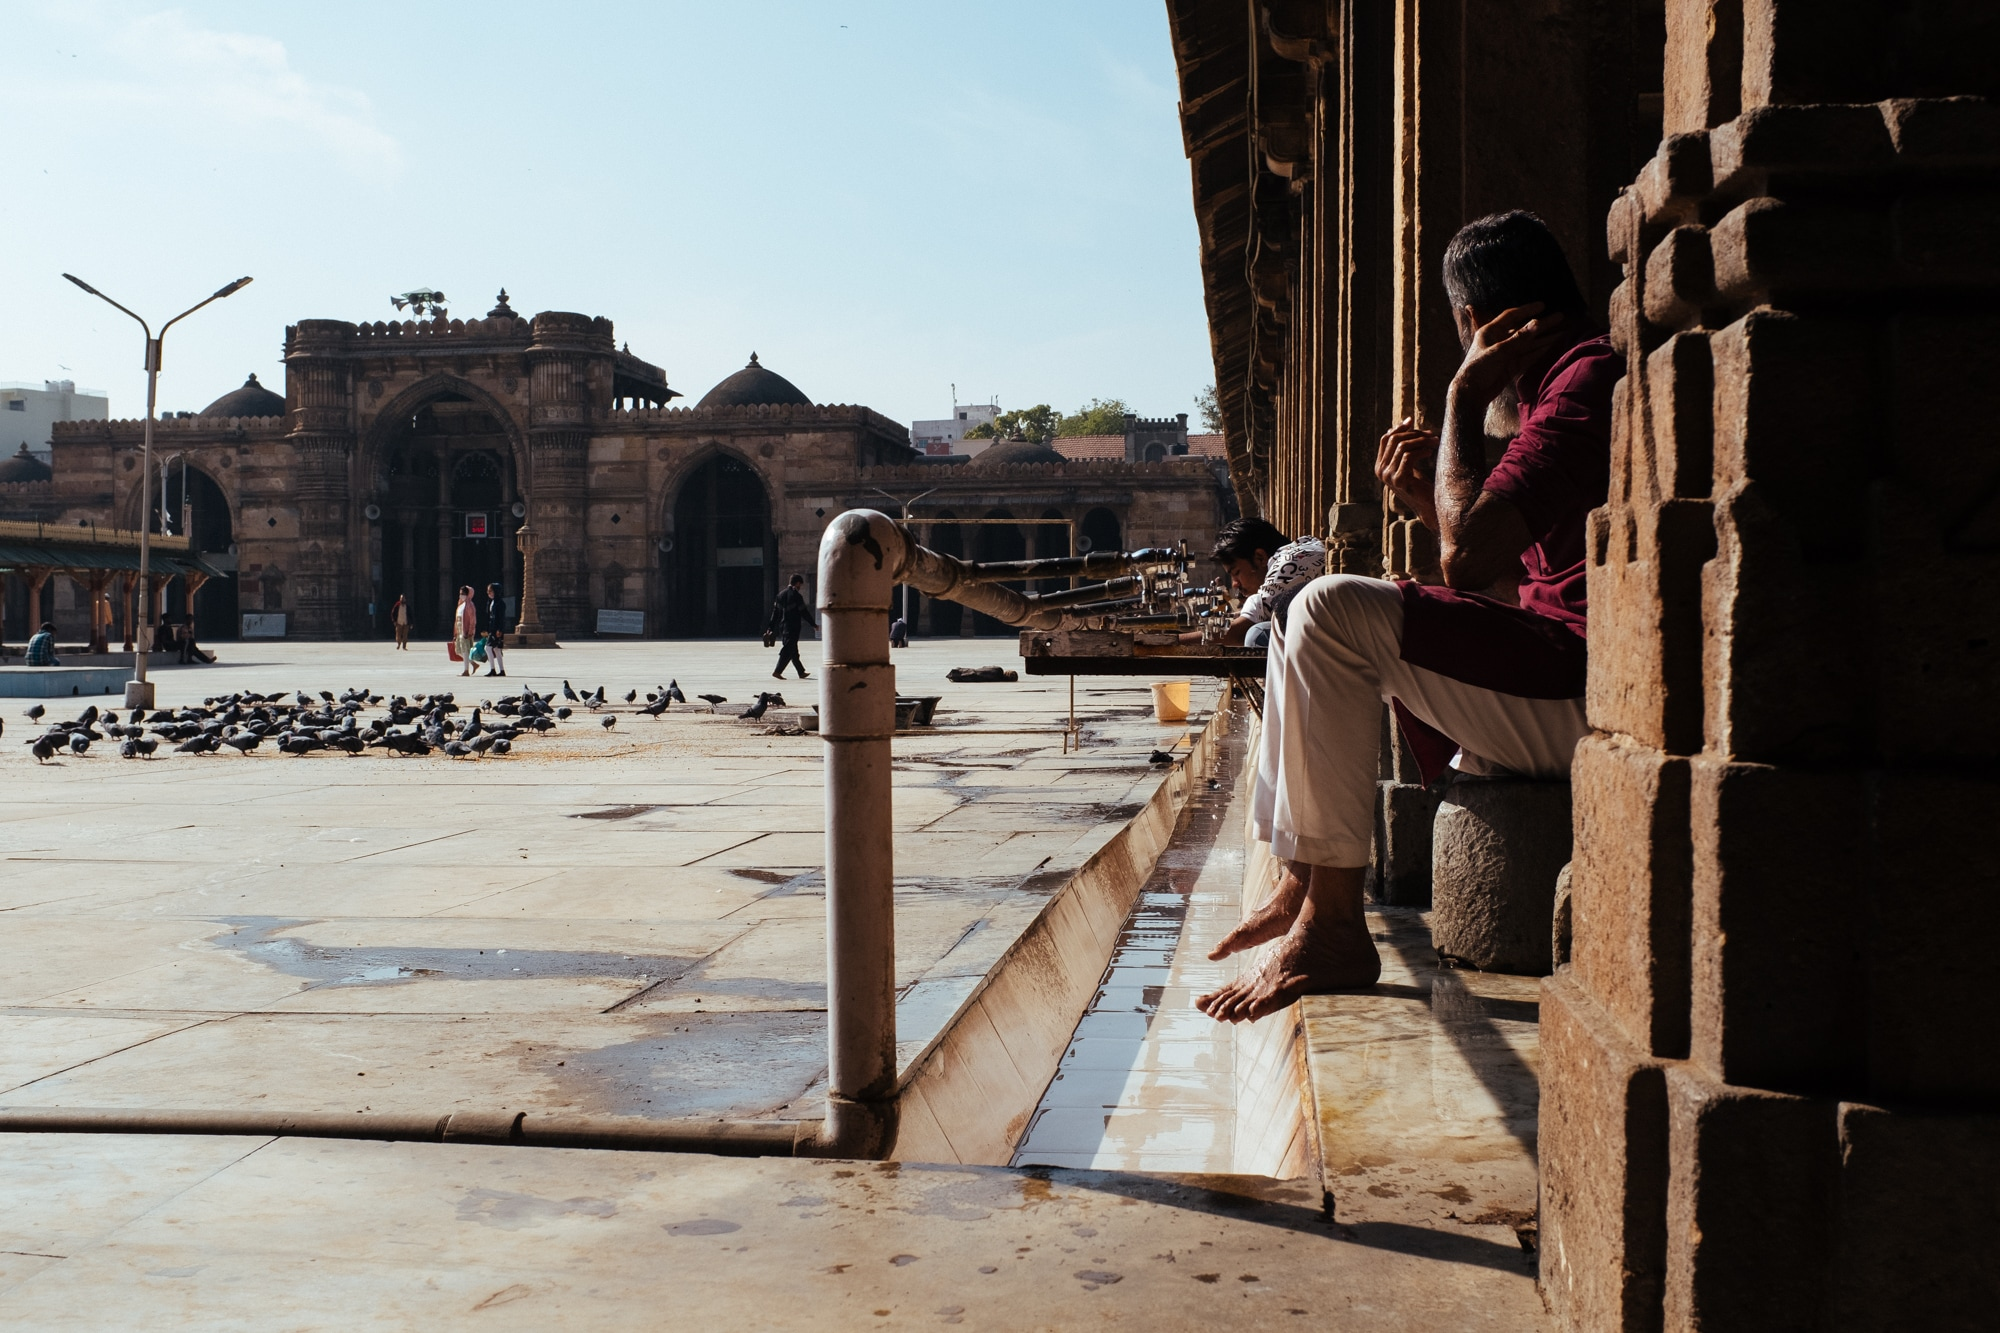 A man performing ablution before prayer at Jama Mosque, Ahmedabad.